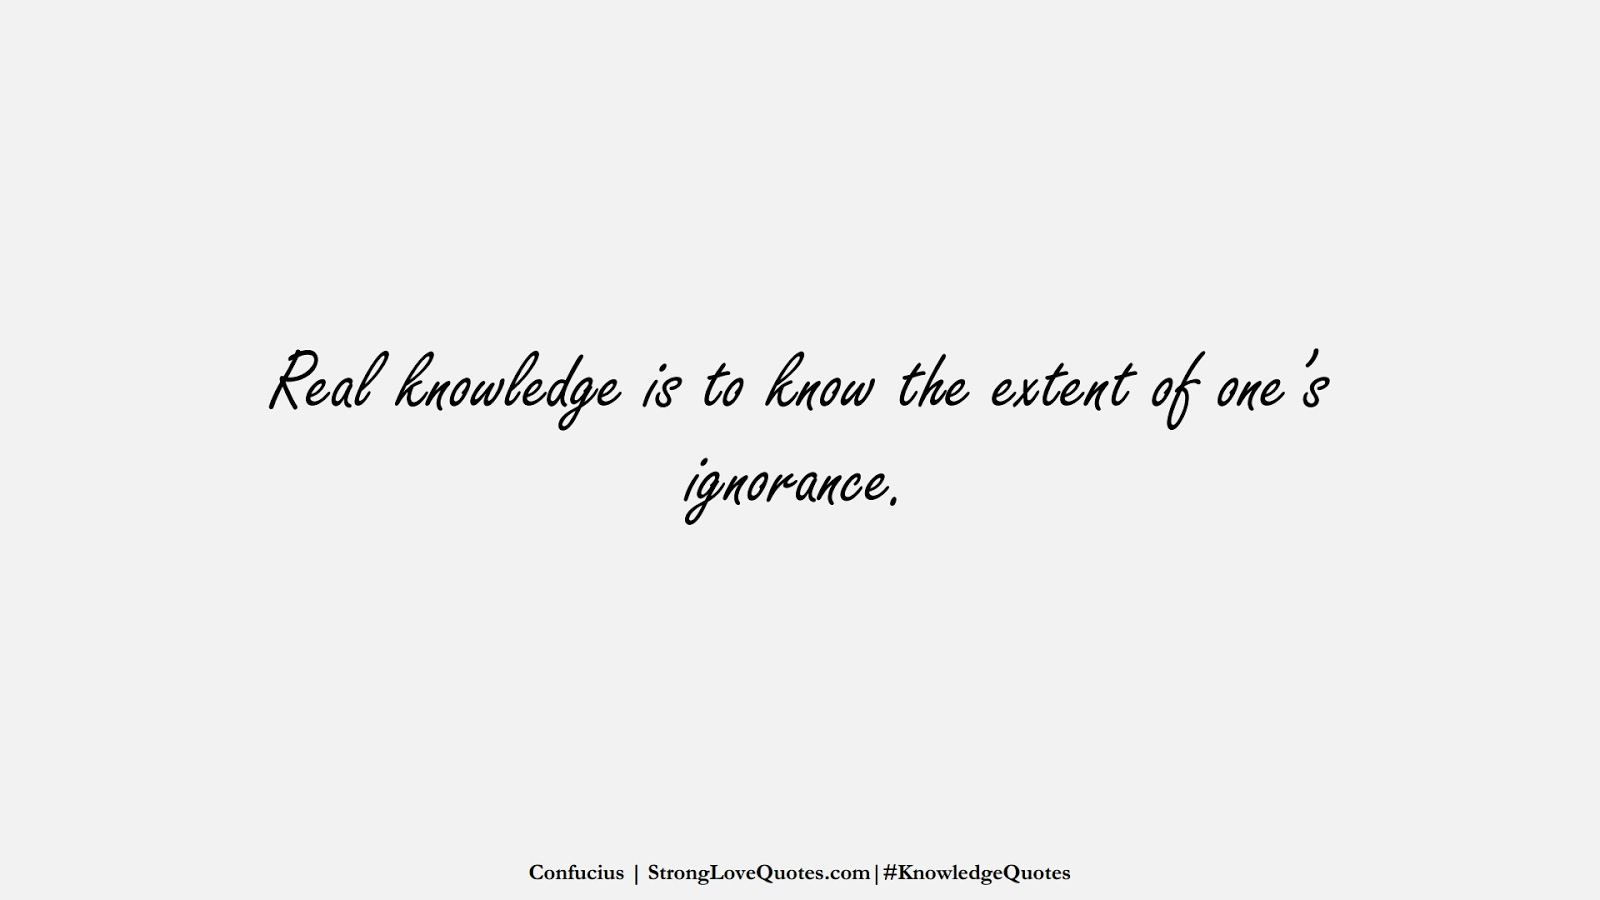 Real knowledge is to know the extent of one's ignorance. (Confucius);  #KnowledgeQuotes